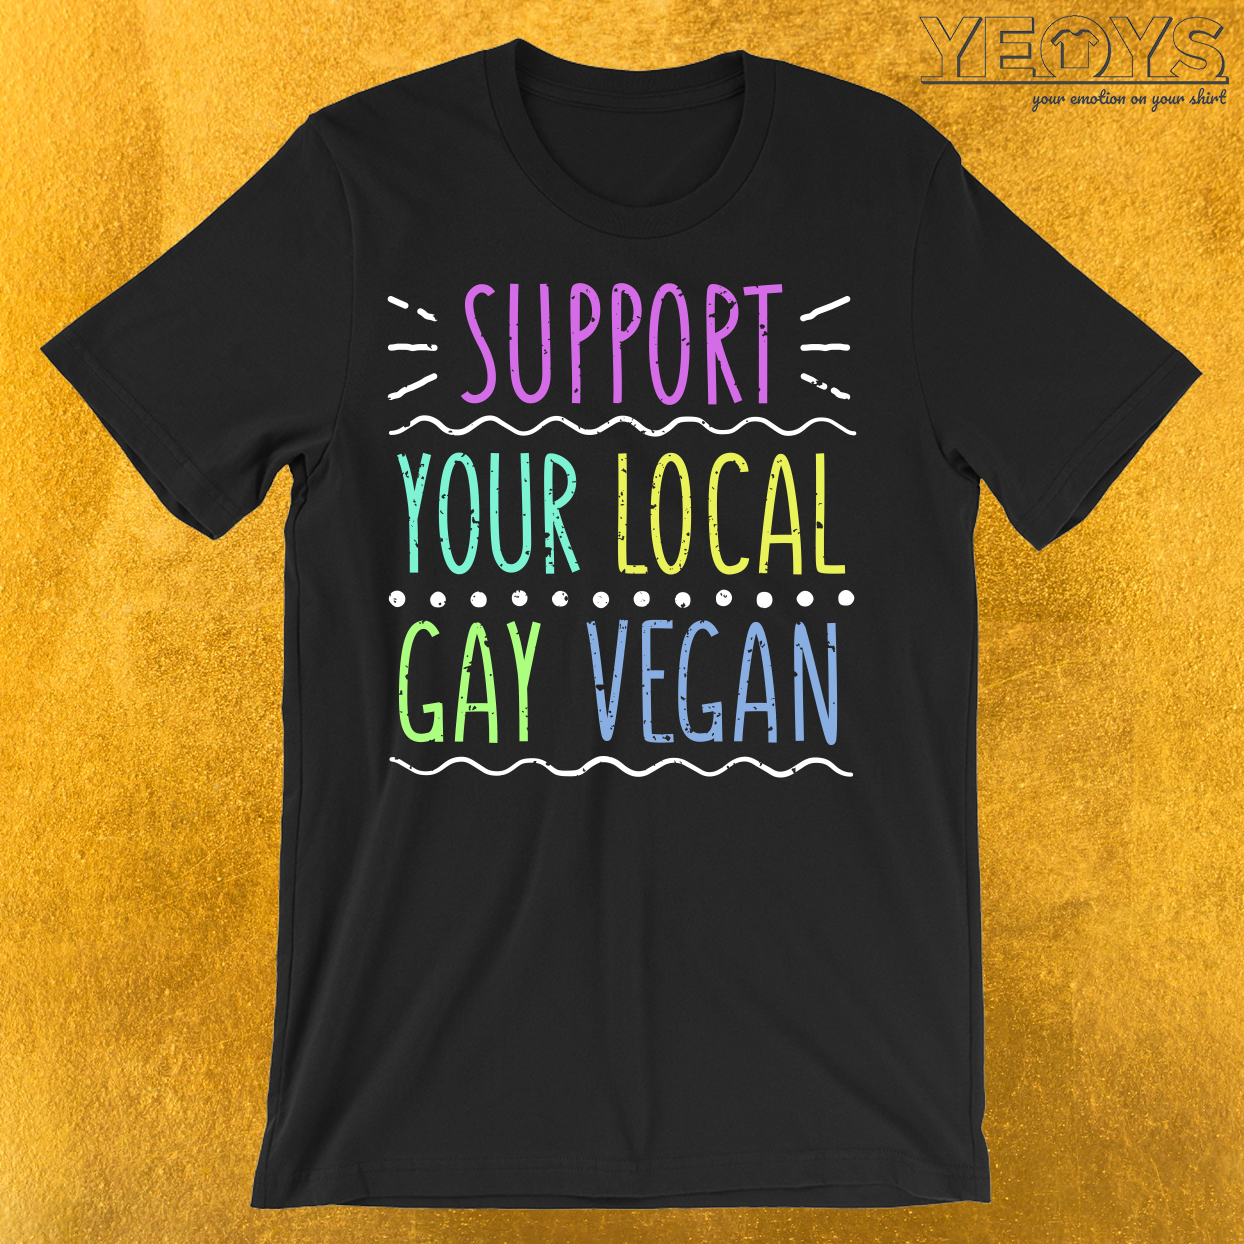 Support Your Local Gay Vegan T-Shirt